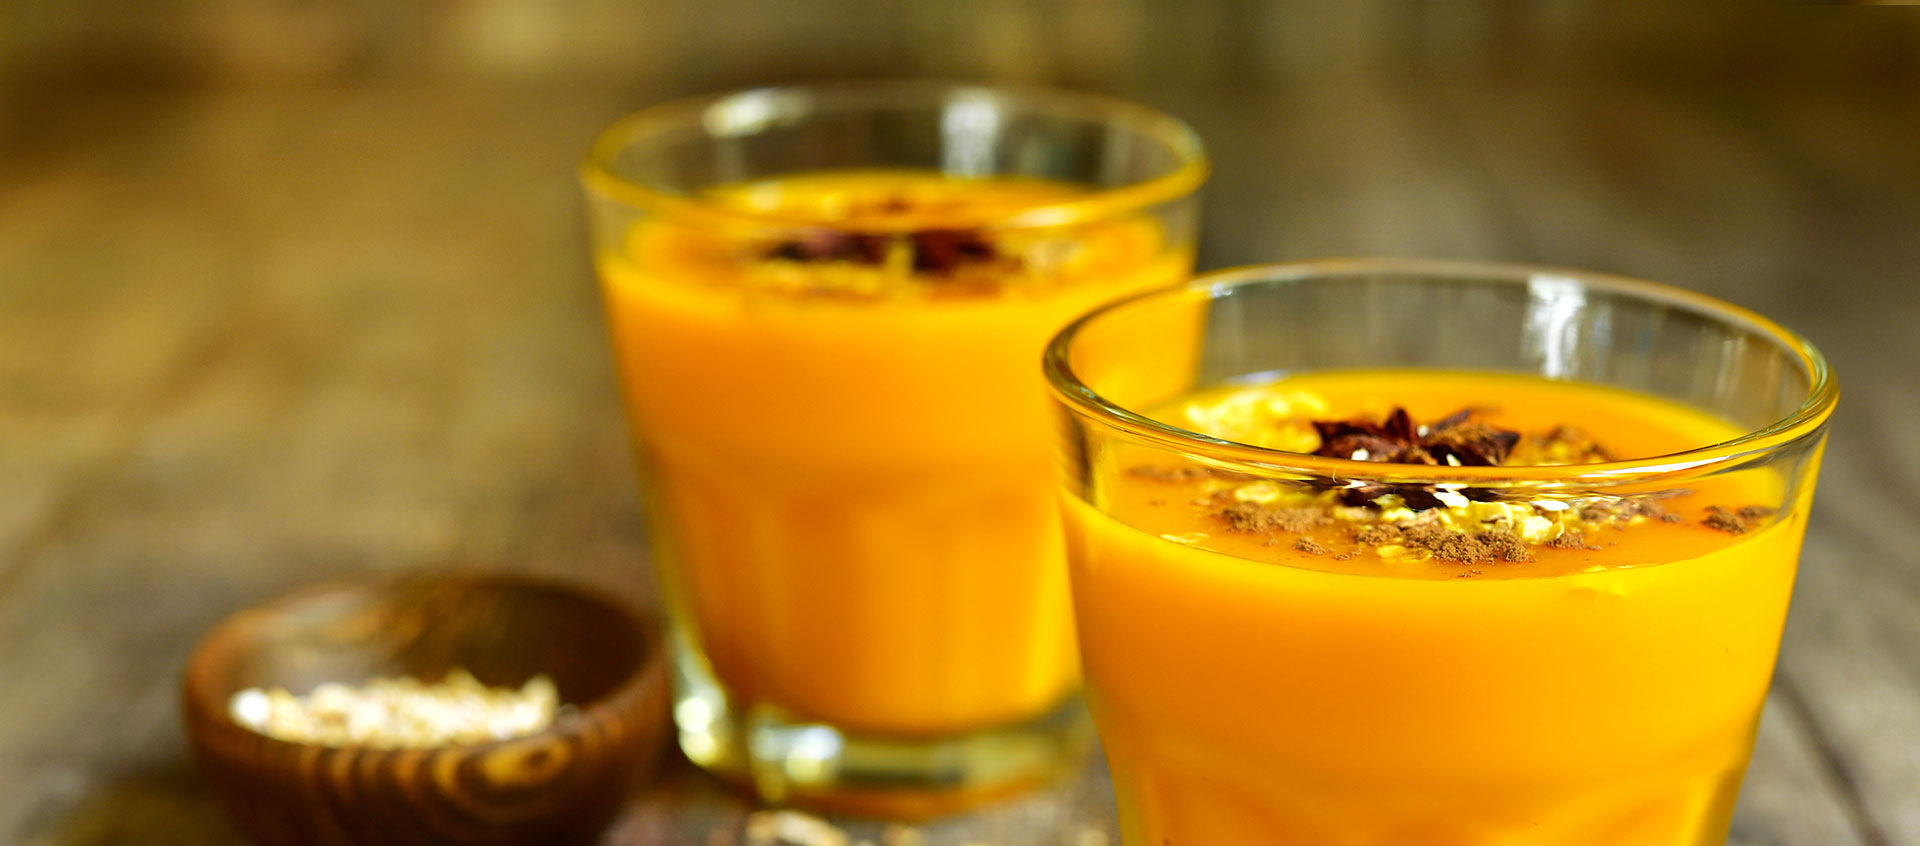 10 Ways to Make Turmeric Part of Your Daily Diet | Kripalu